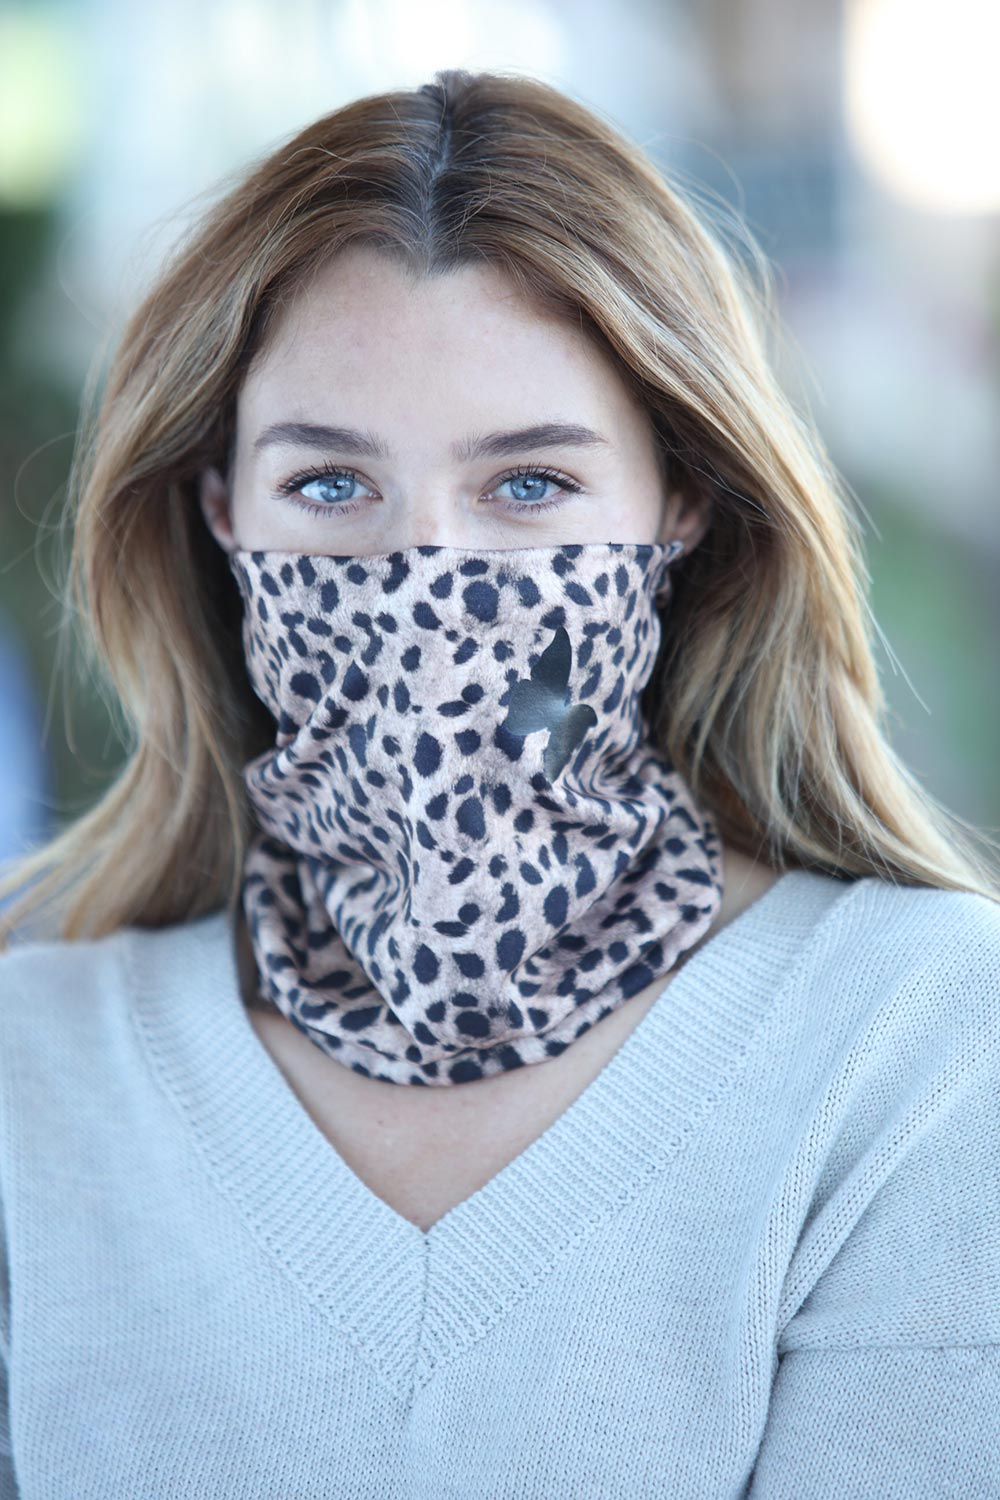 Cheetah With Butterfly Gaiter Scarf